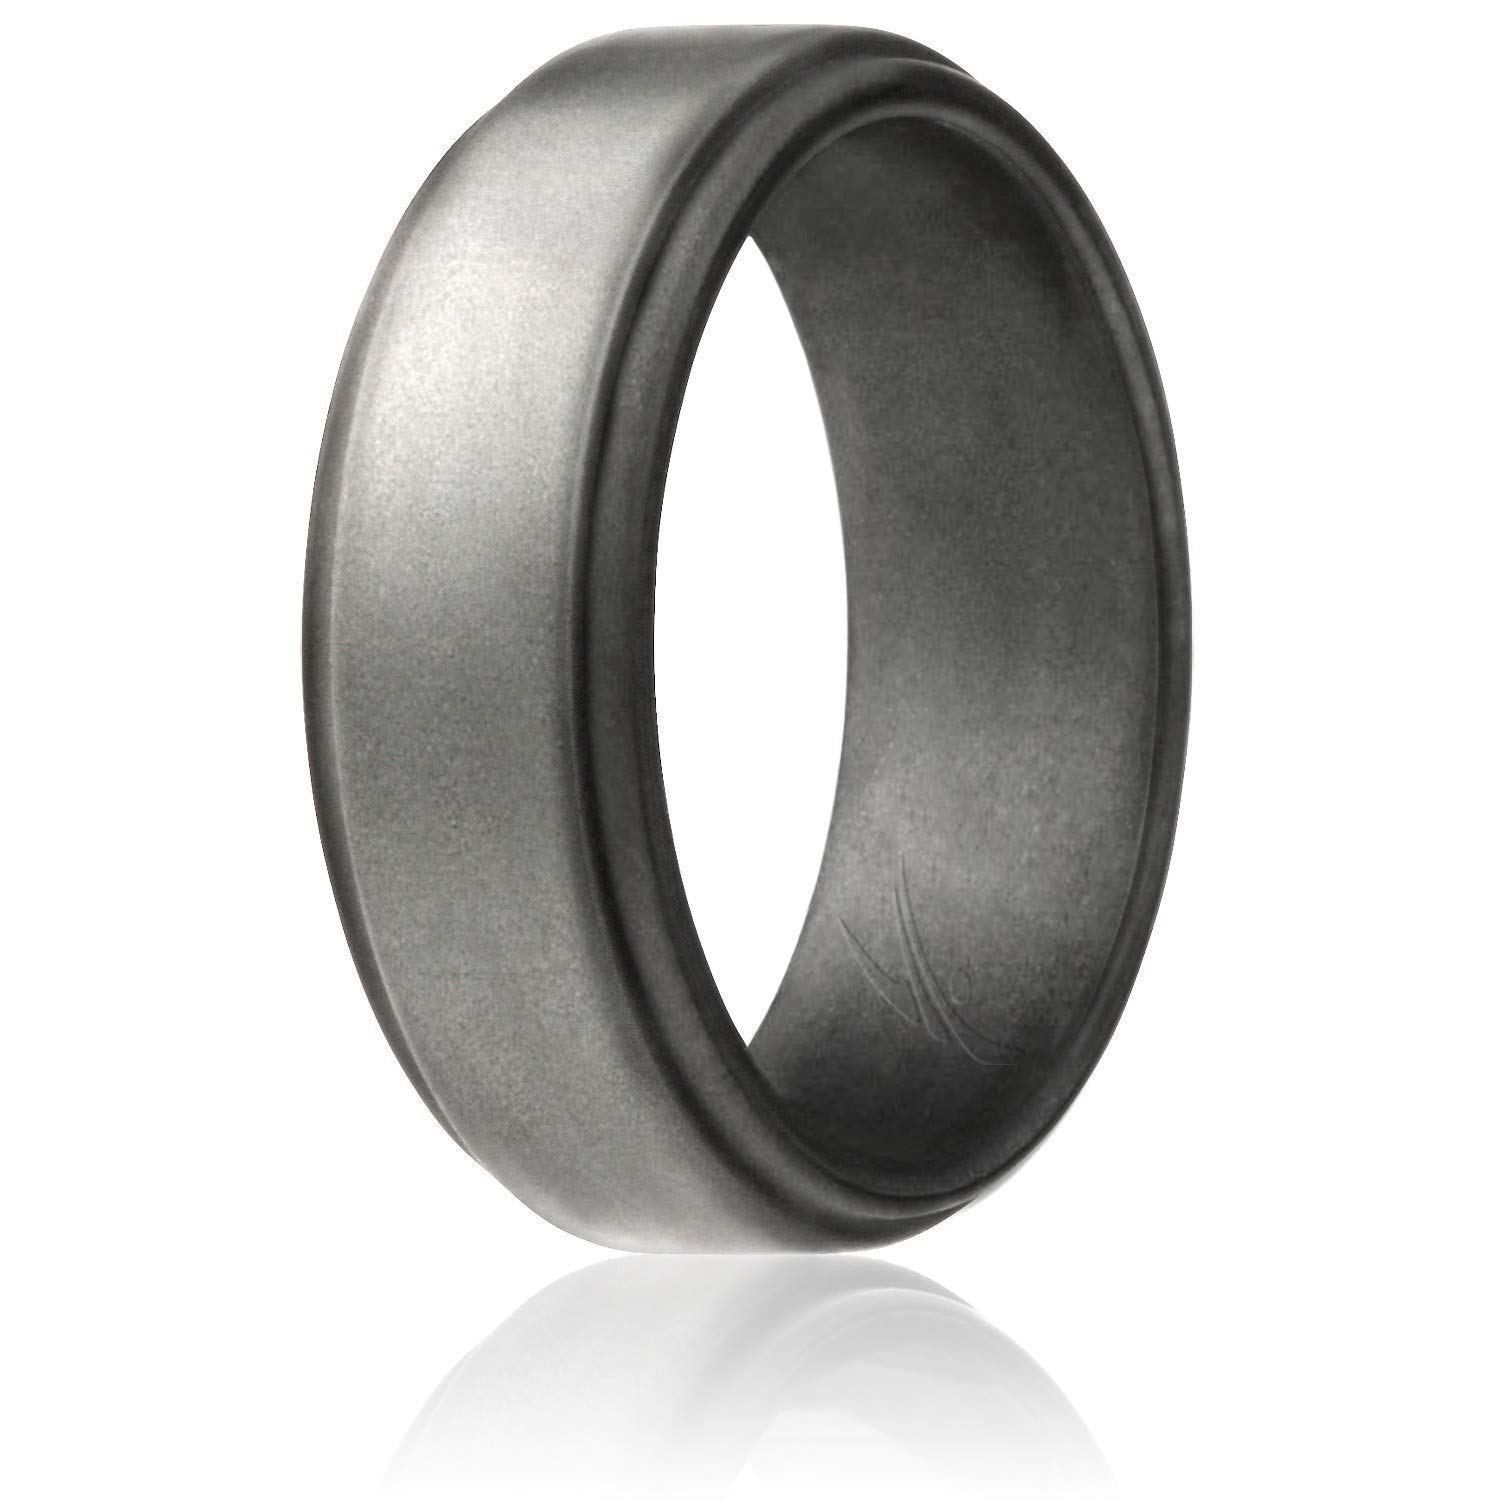 Roq Silicone Wedding Ring For Men 4 Packs Singles Silicone Rubber Wedding Bands Step Edge Sleek Design Metallic Black And Camo Colors Lovely Novelty Rubber Wedding Band